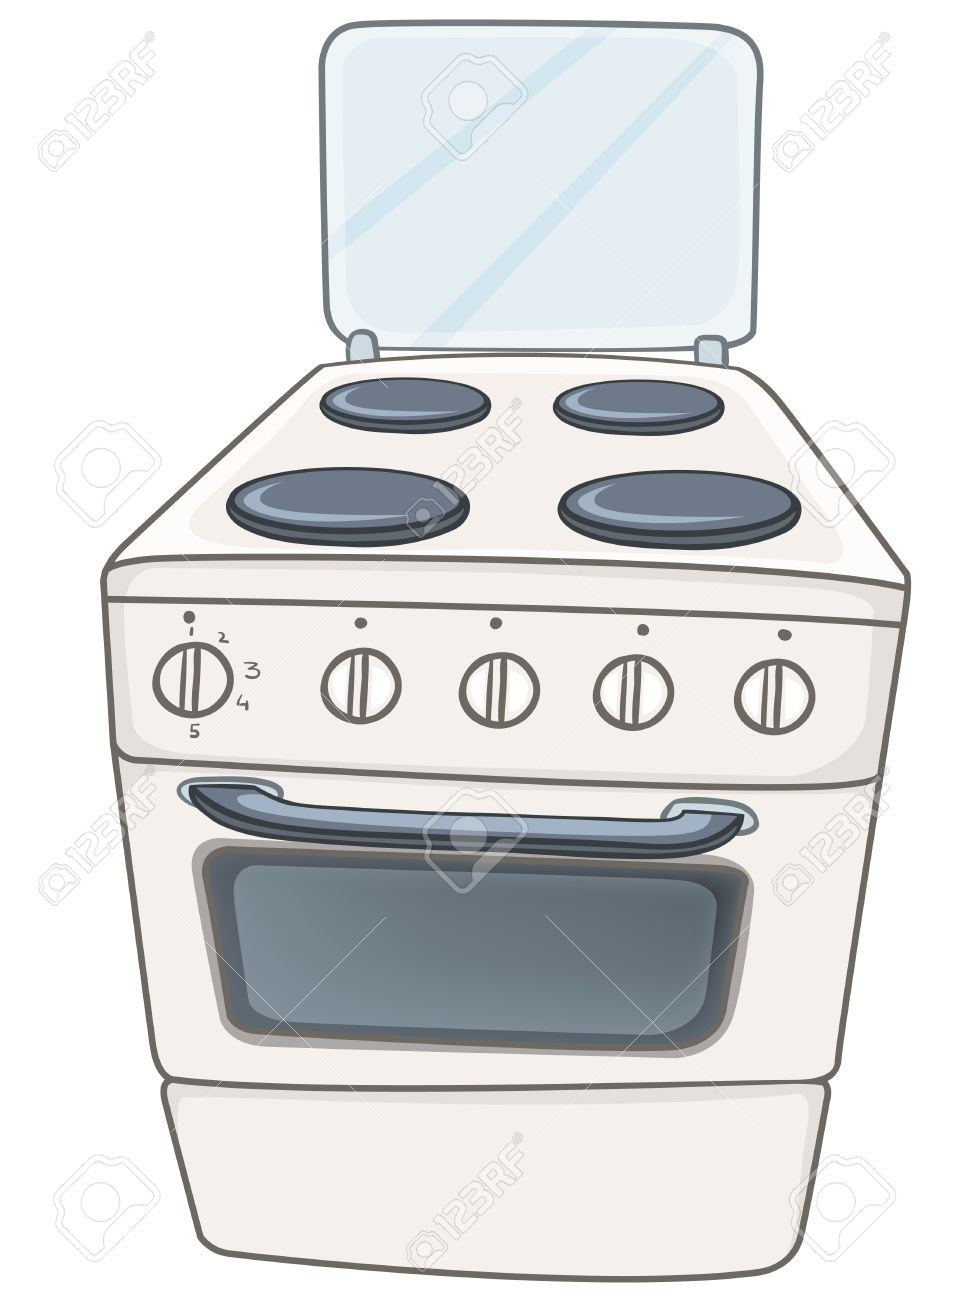 Cartoon Home Kitchen Stove Royalty Free Cliparts, Vectors, And.